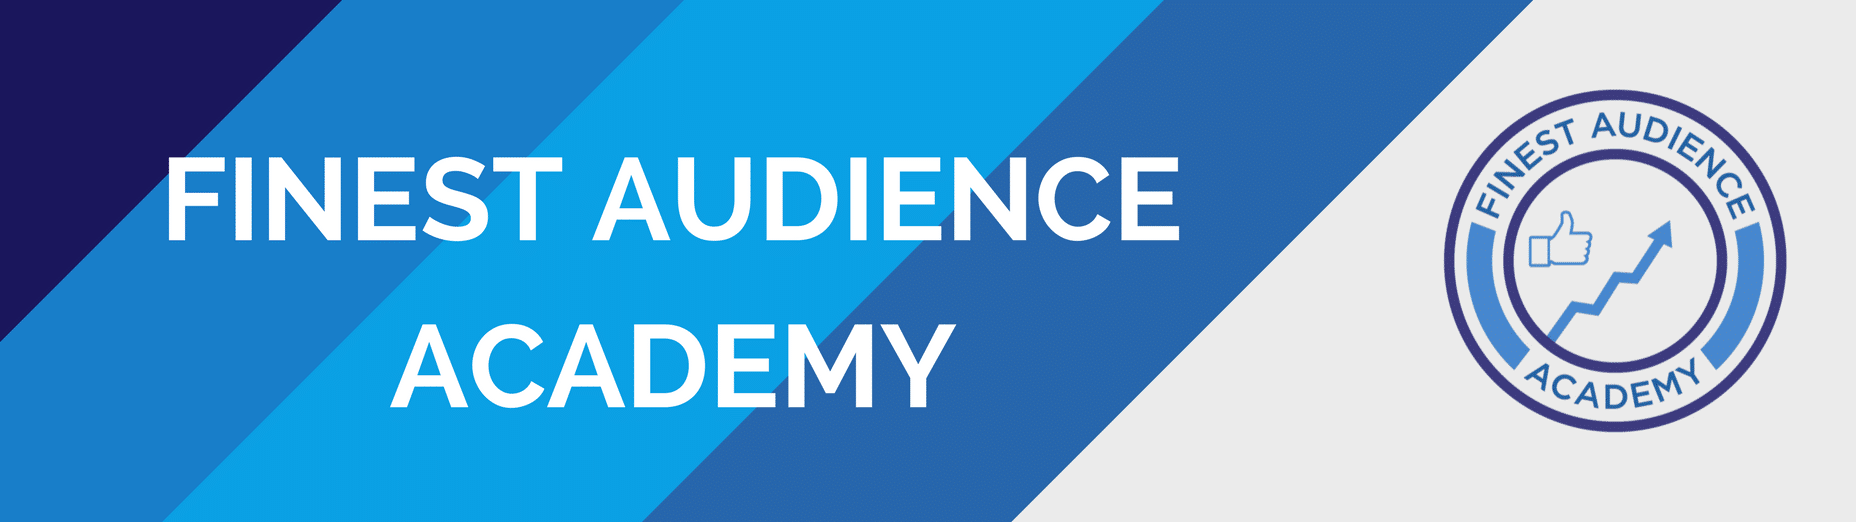 Finest Audience Academy